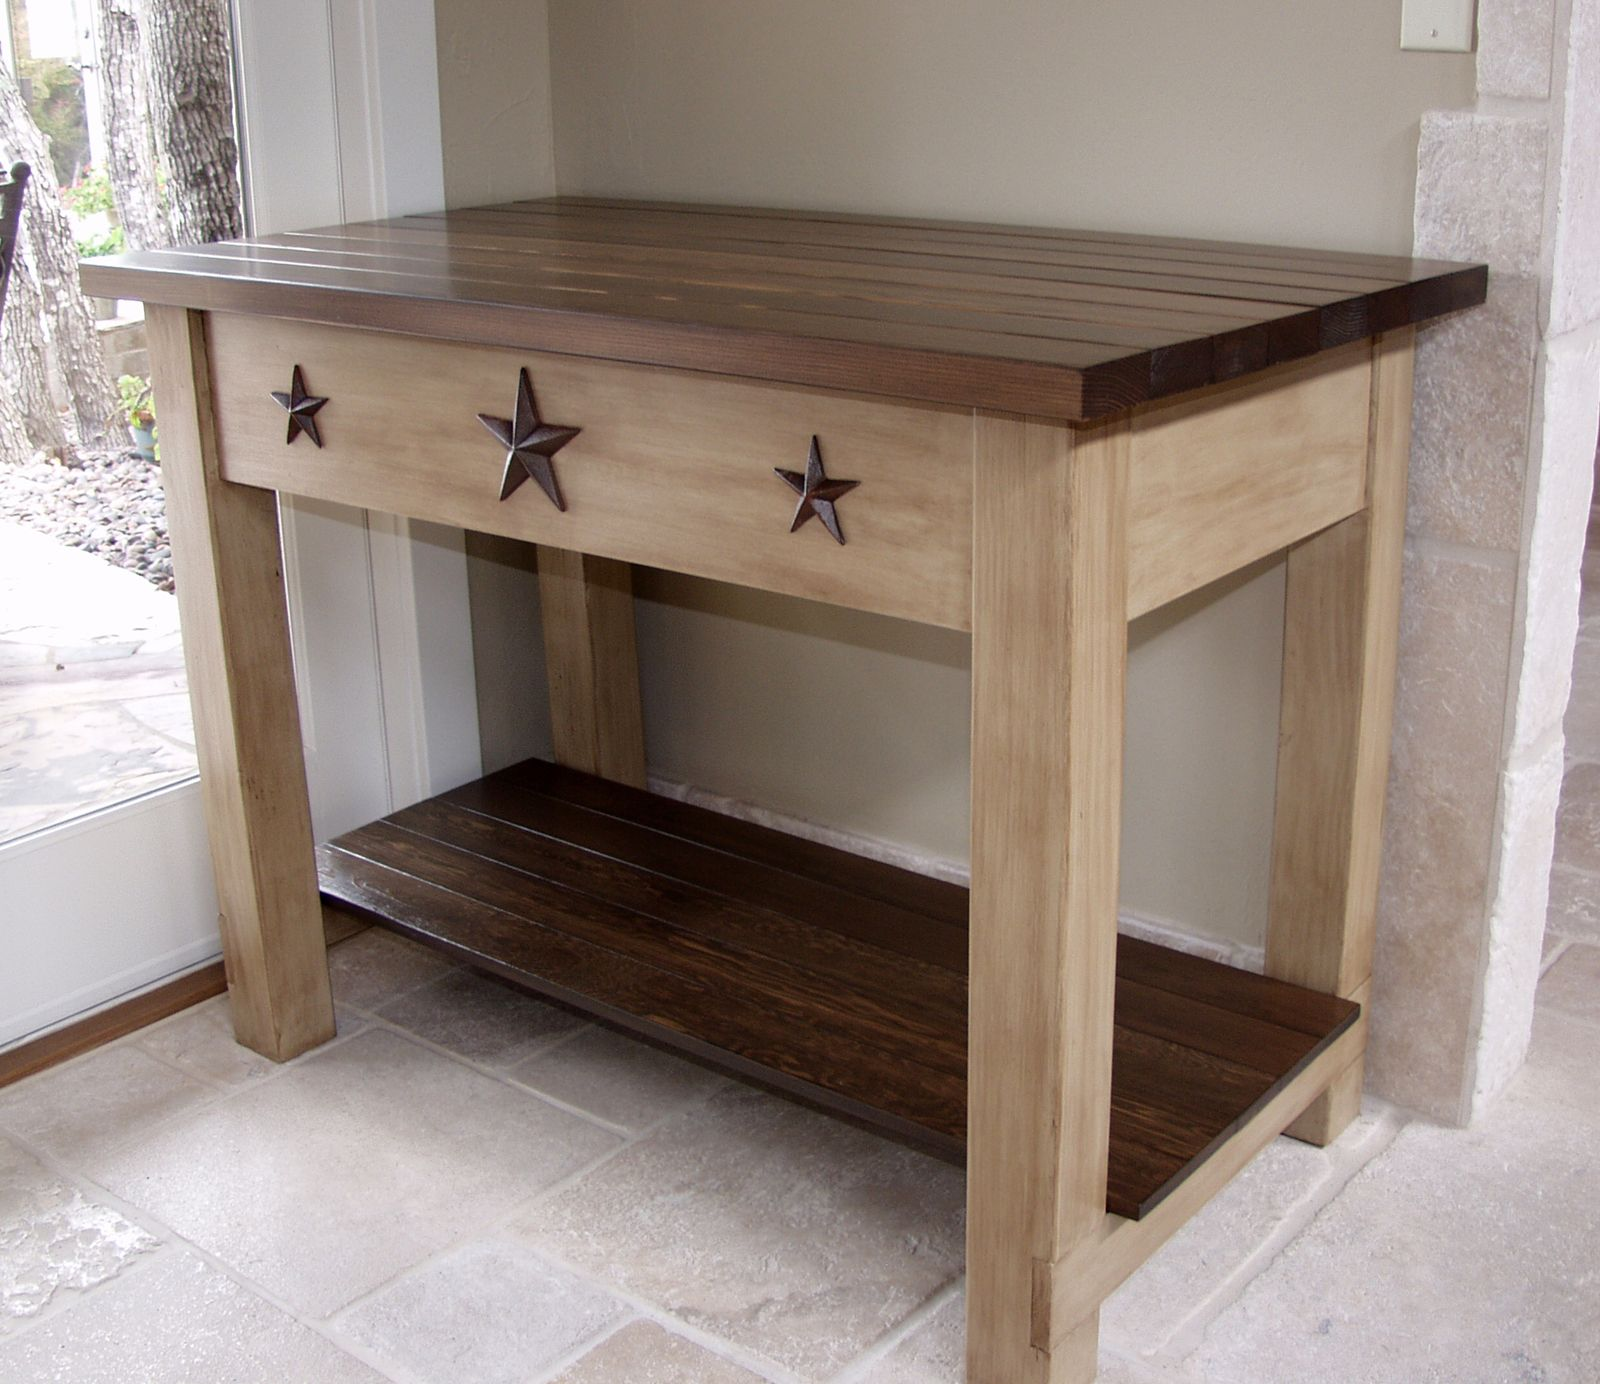 Kitchen Island or Cactus Table